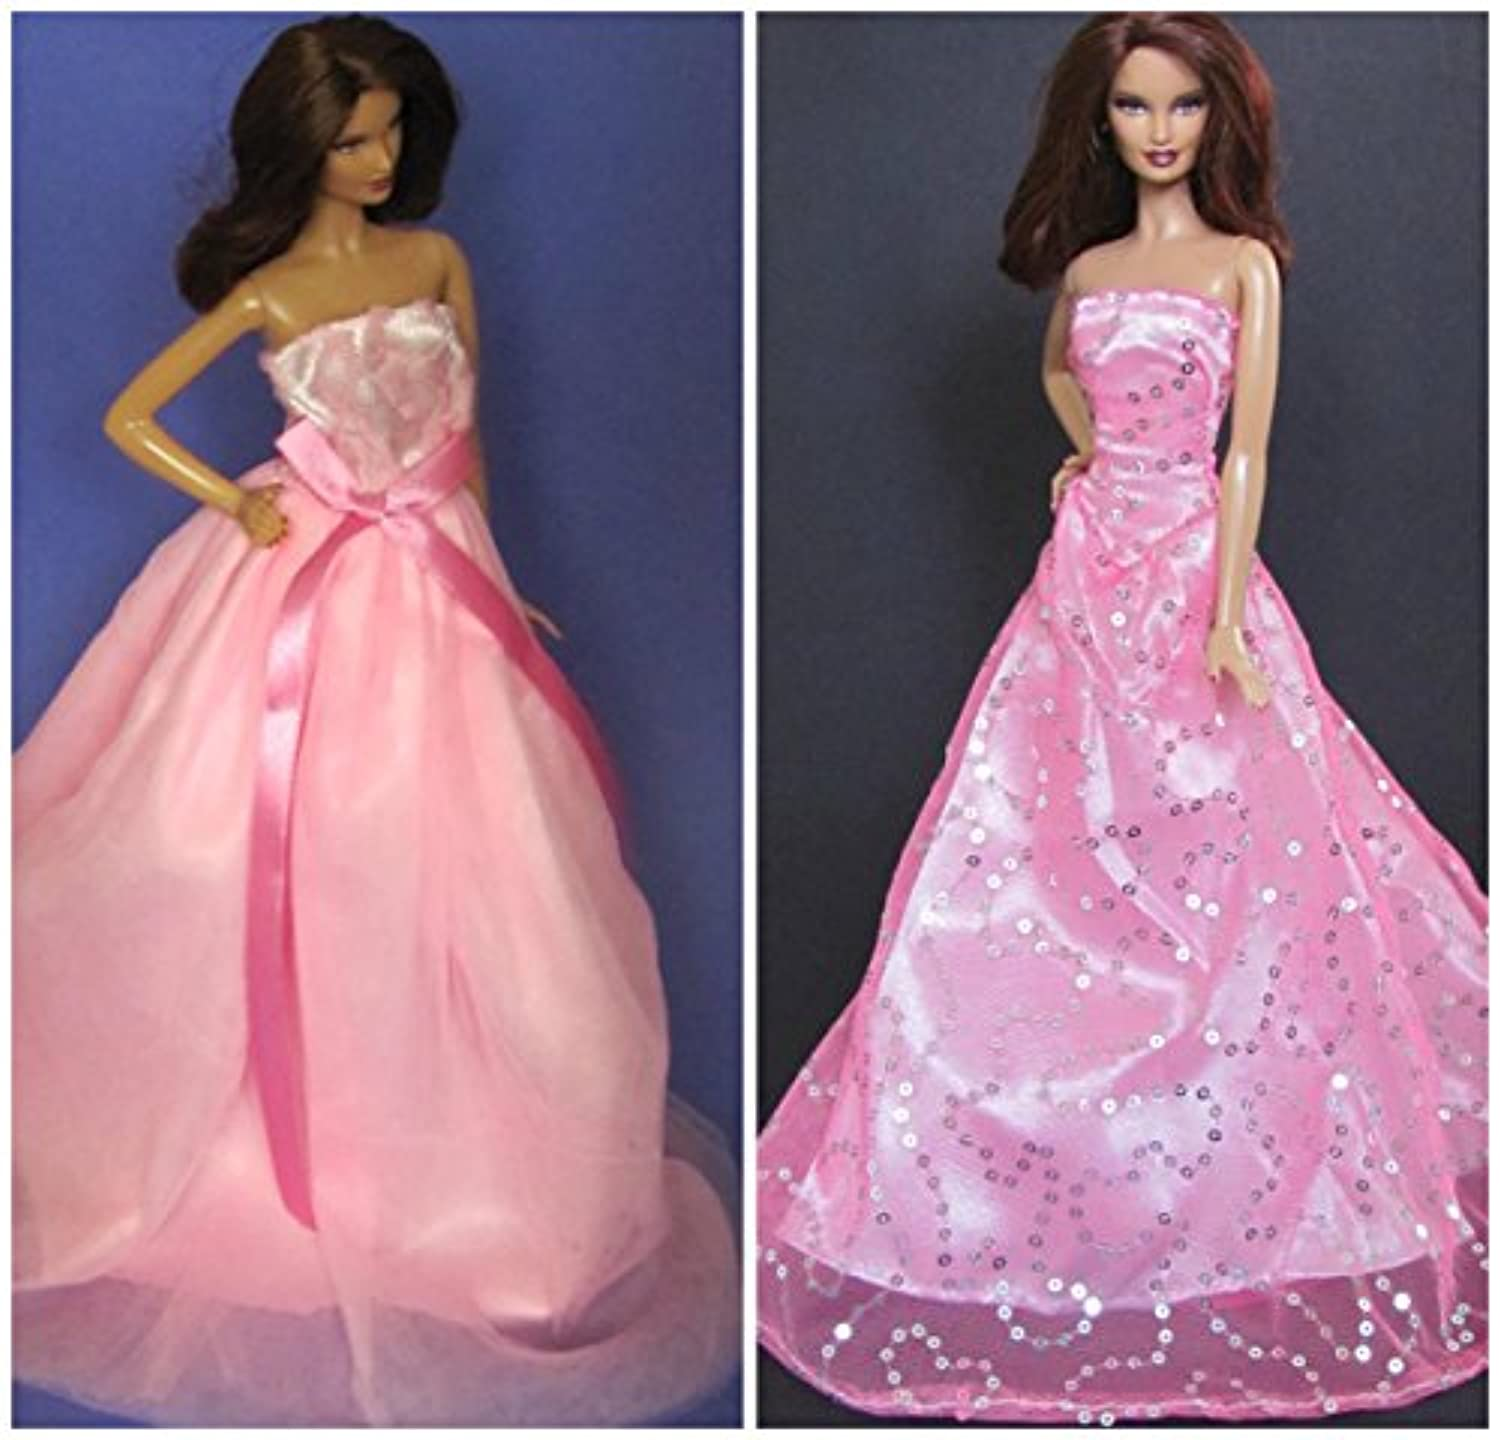 hellojoyロット2個ファッションカジュアルWear Clothes / outfit for Barbie Dolls D